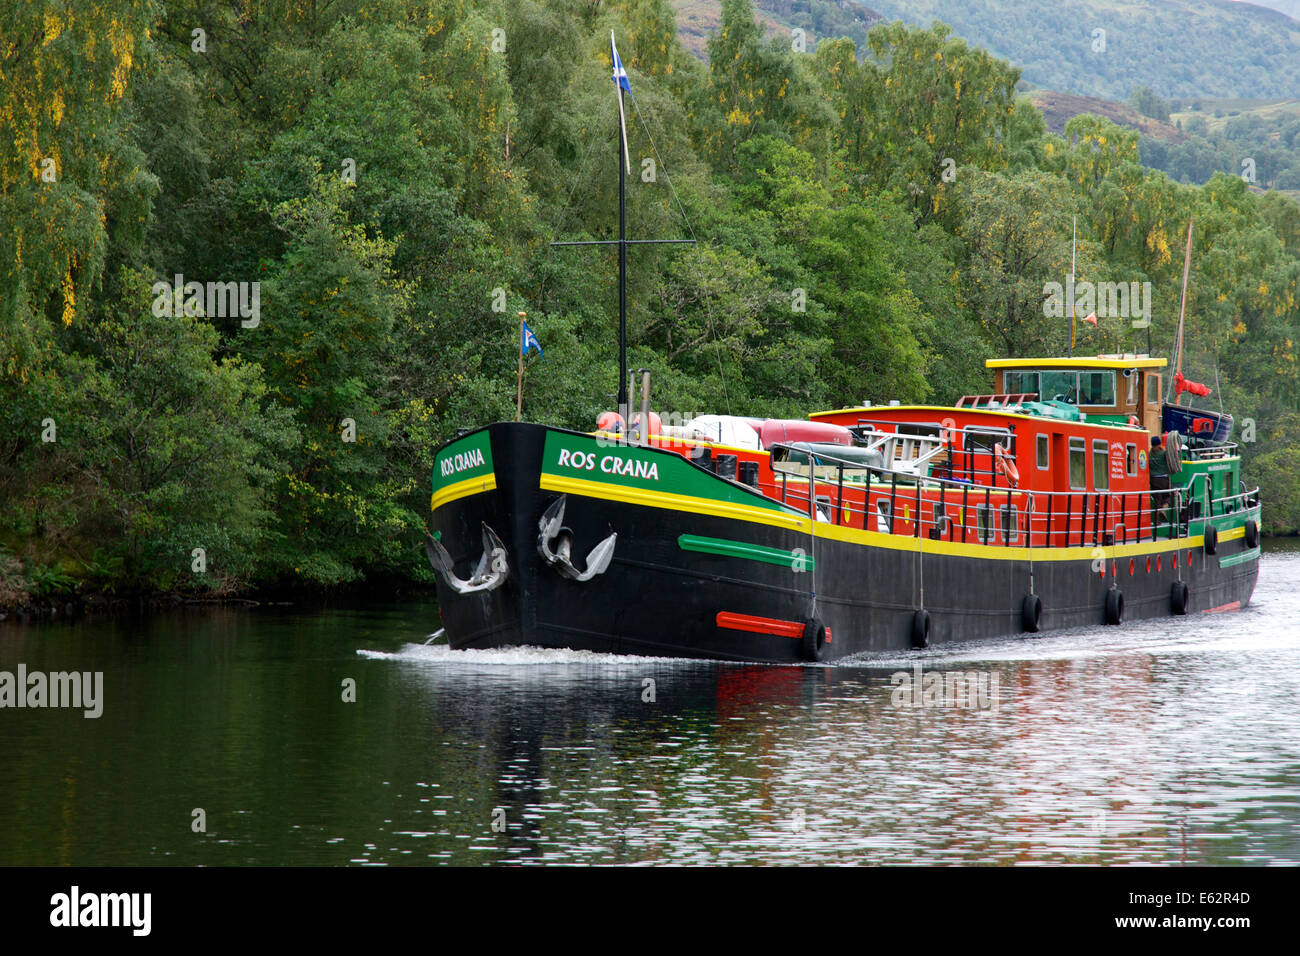 A hotel boat moves along the Caledonian canal to meet up with its customers - Stock Image